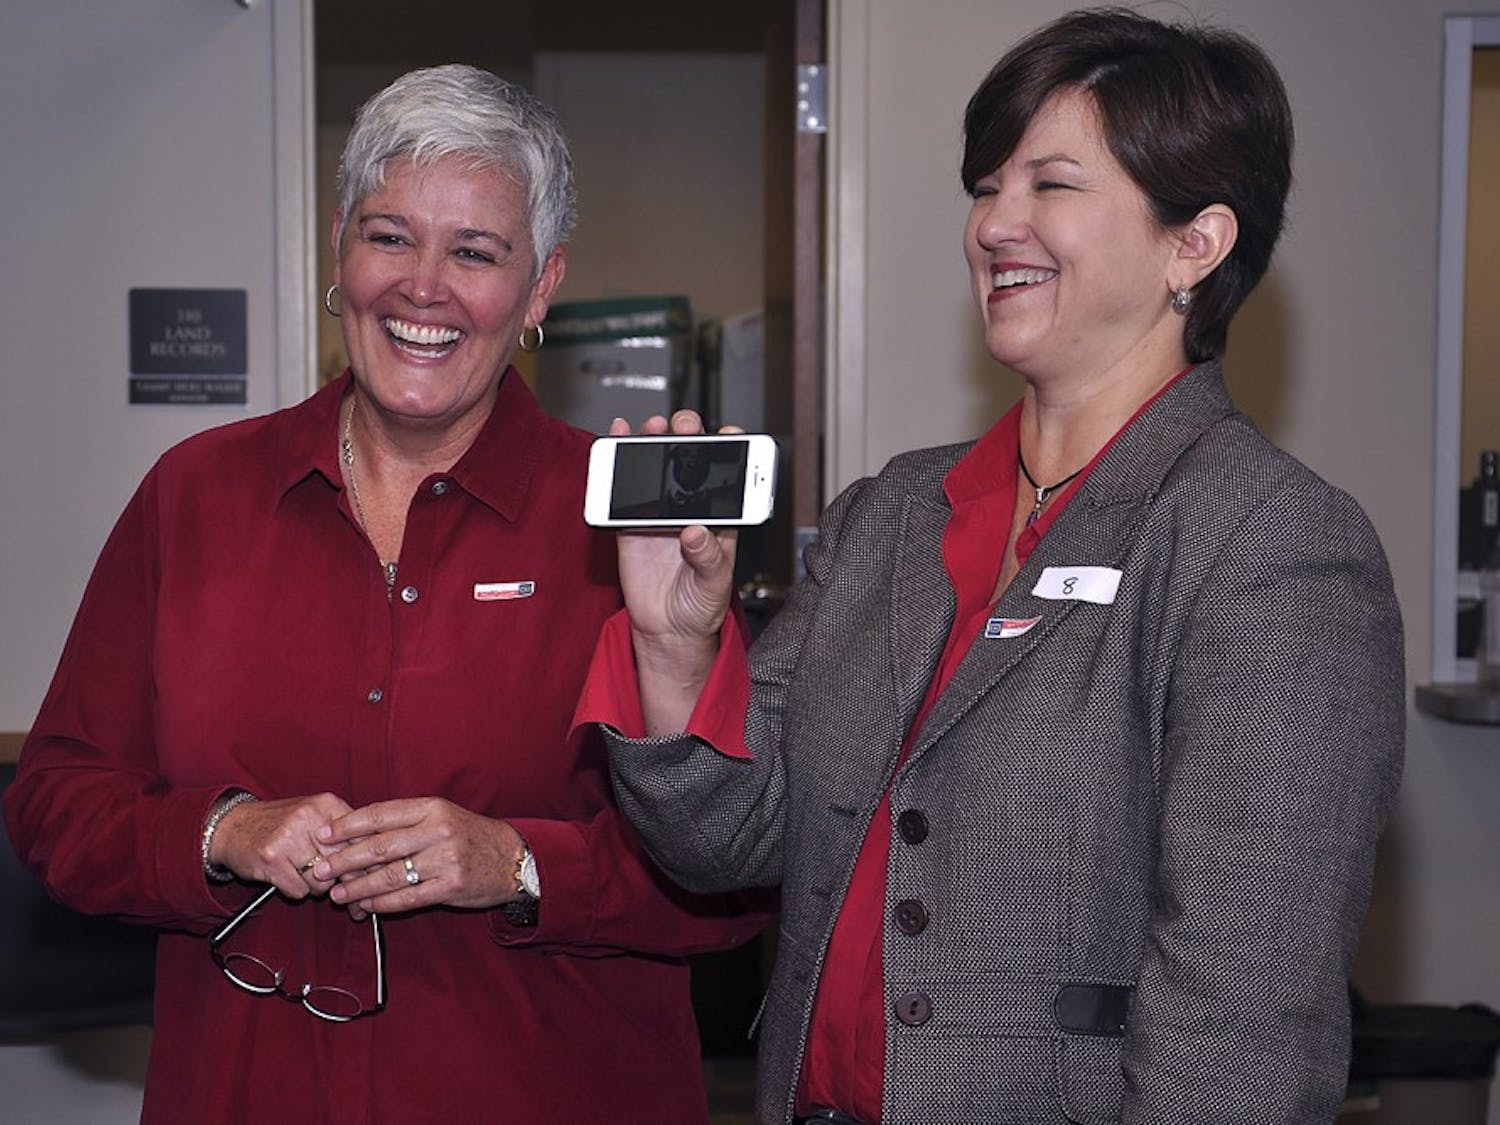 Same-sex couples were allowed to register for marriage licenses for the first time on Monday Oct. 13, 2014, at the Orange County Register of Deeds in Hillsborough.